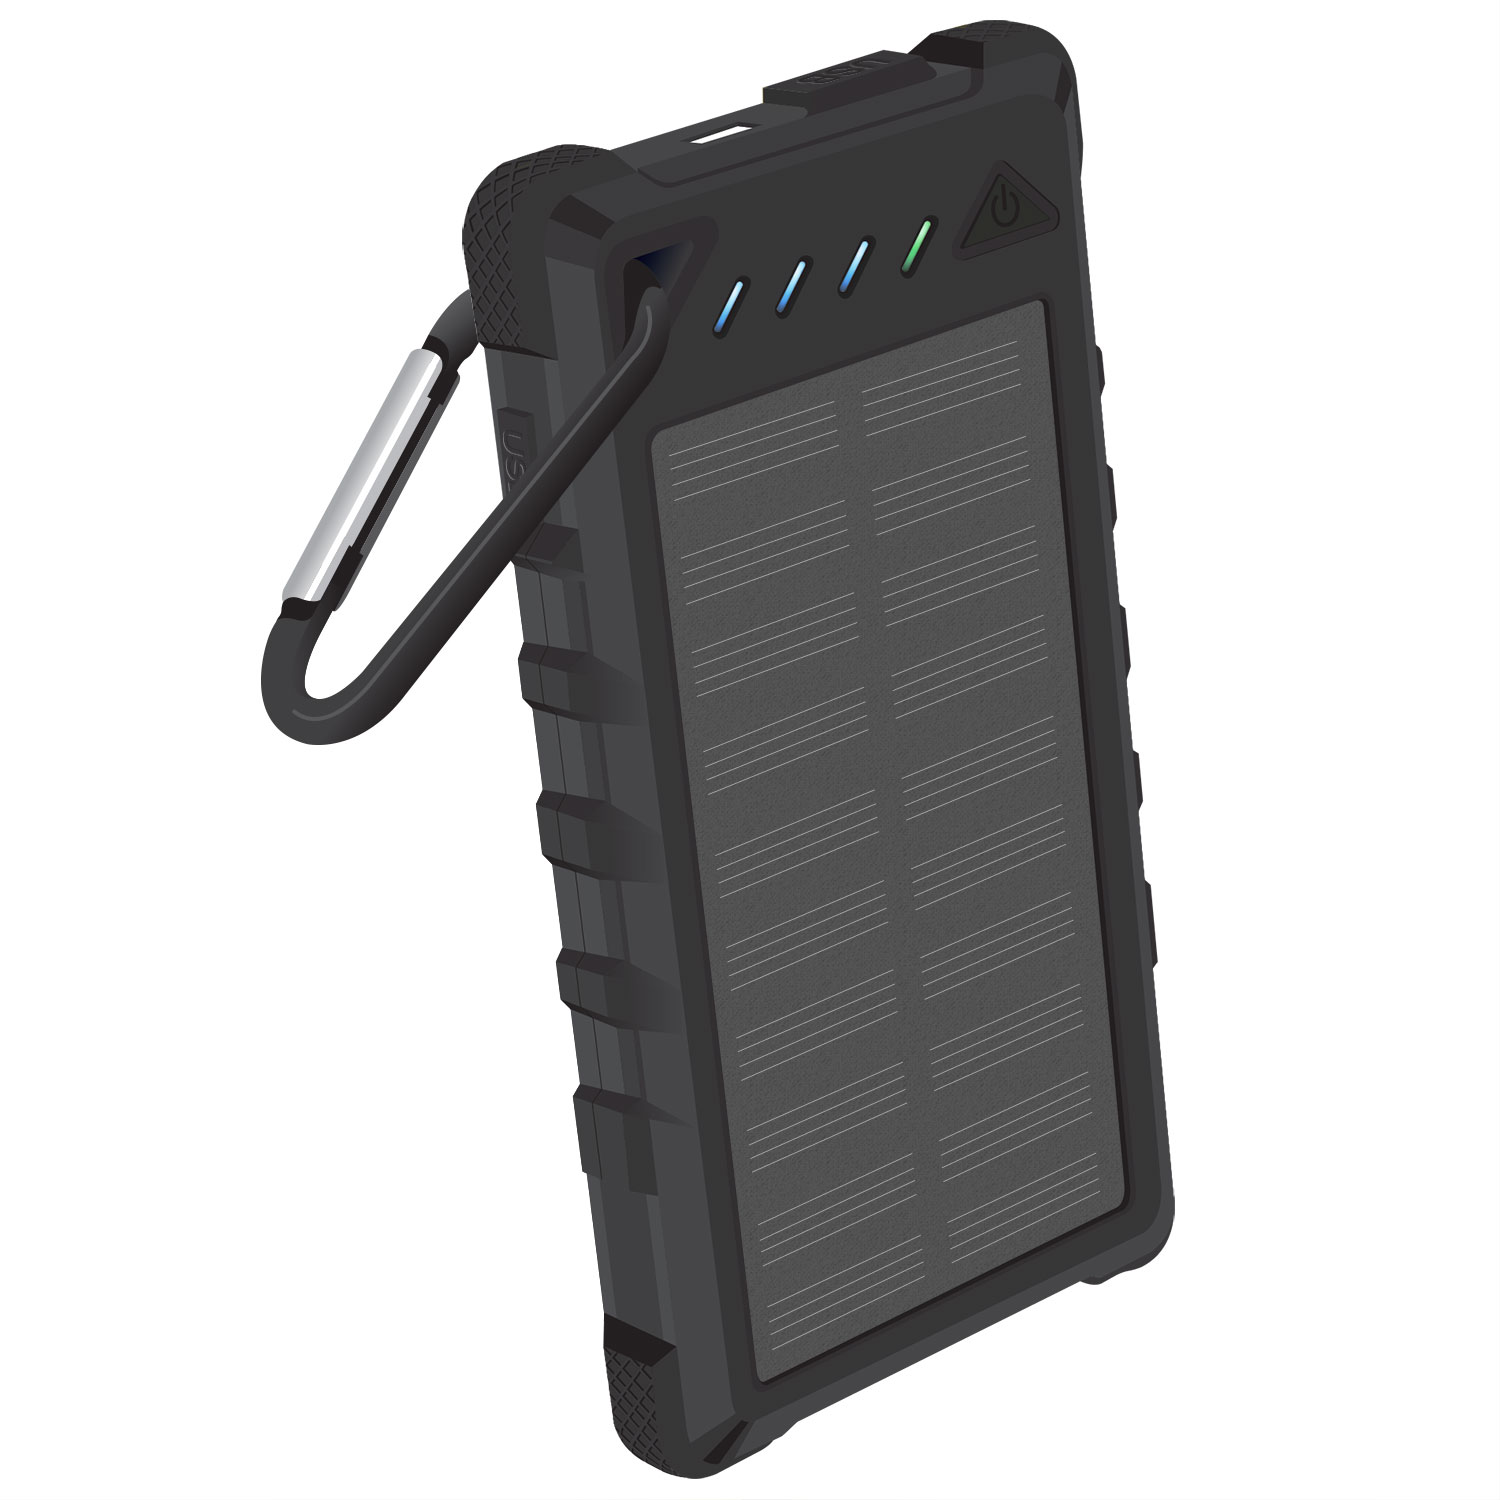 LG Q6 Solar Powered Portable PowerBank Black